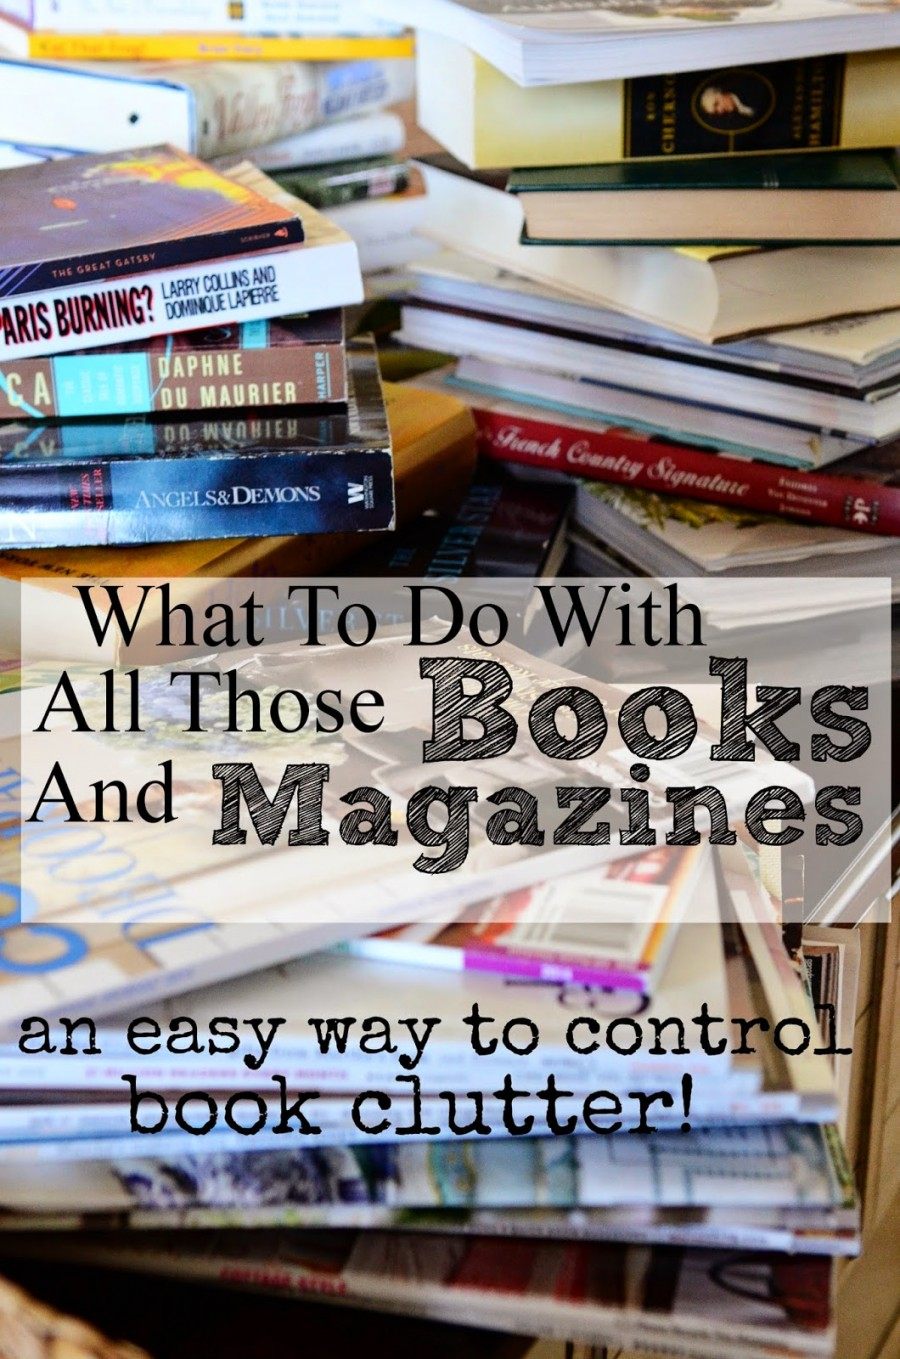 ORGANIZING BOOK AND MAGAZINE CLUTTER